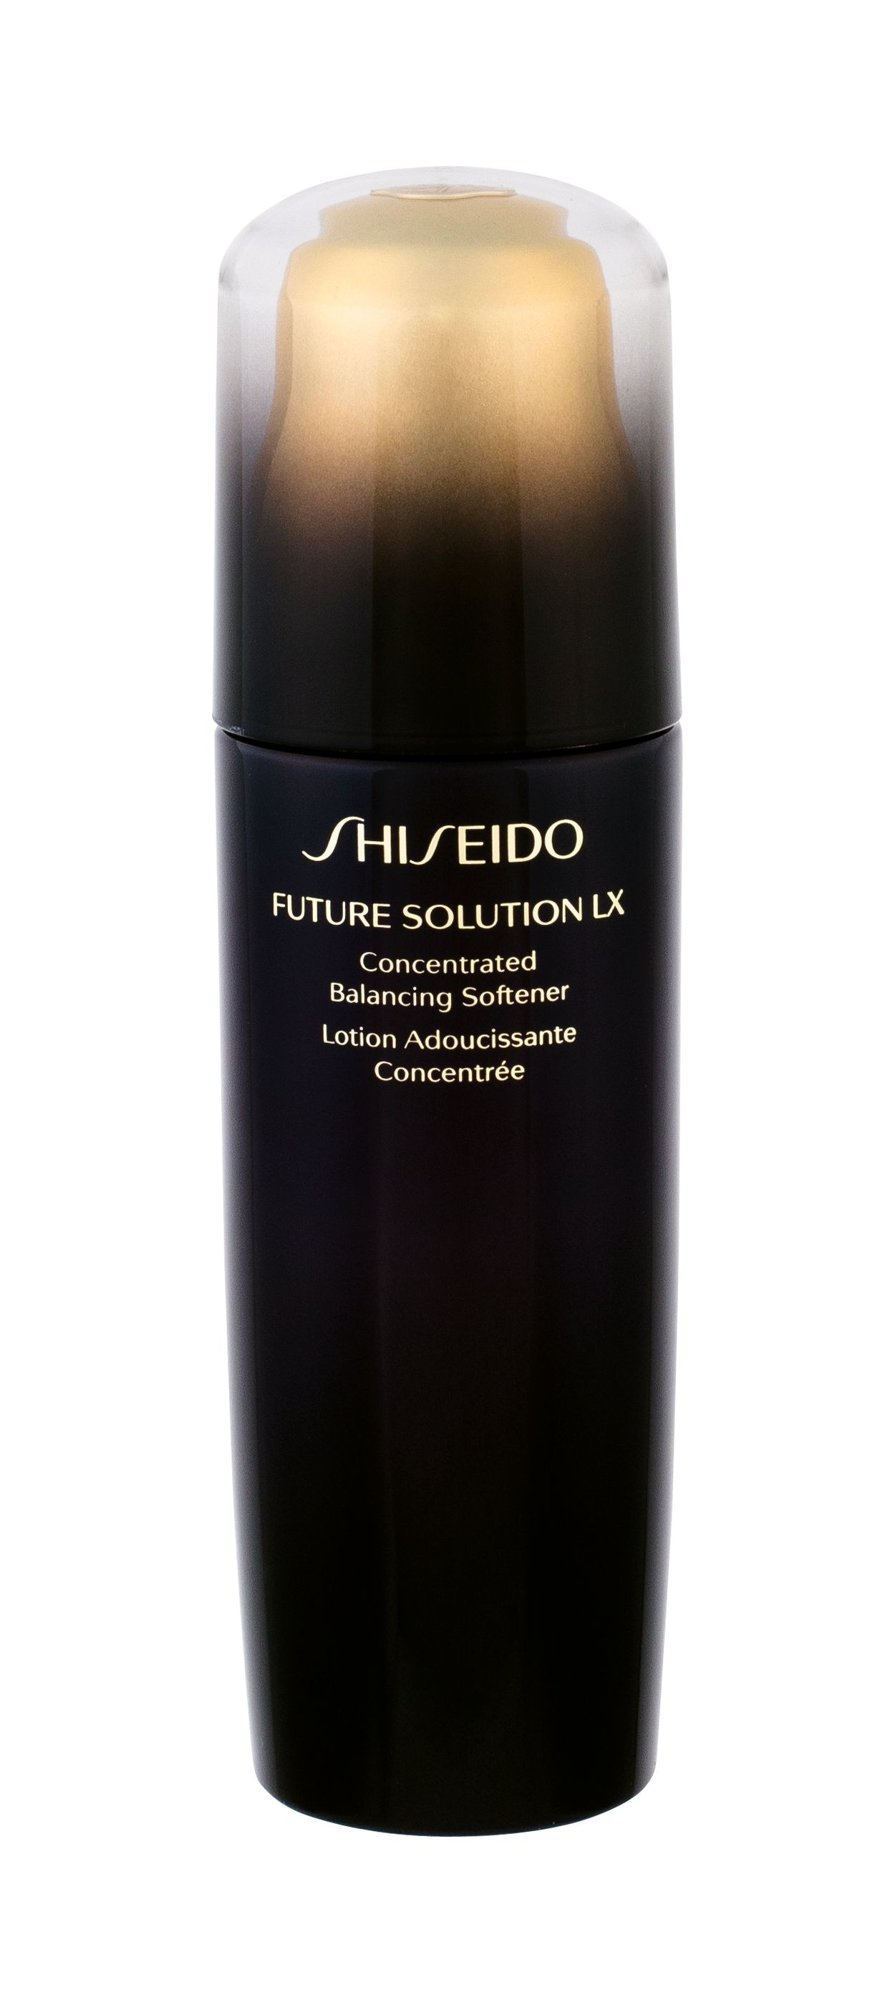 Shiseido Future Solution LX Facial Lotion 170ml